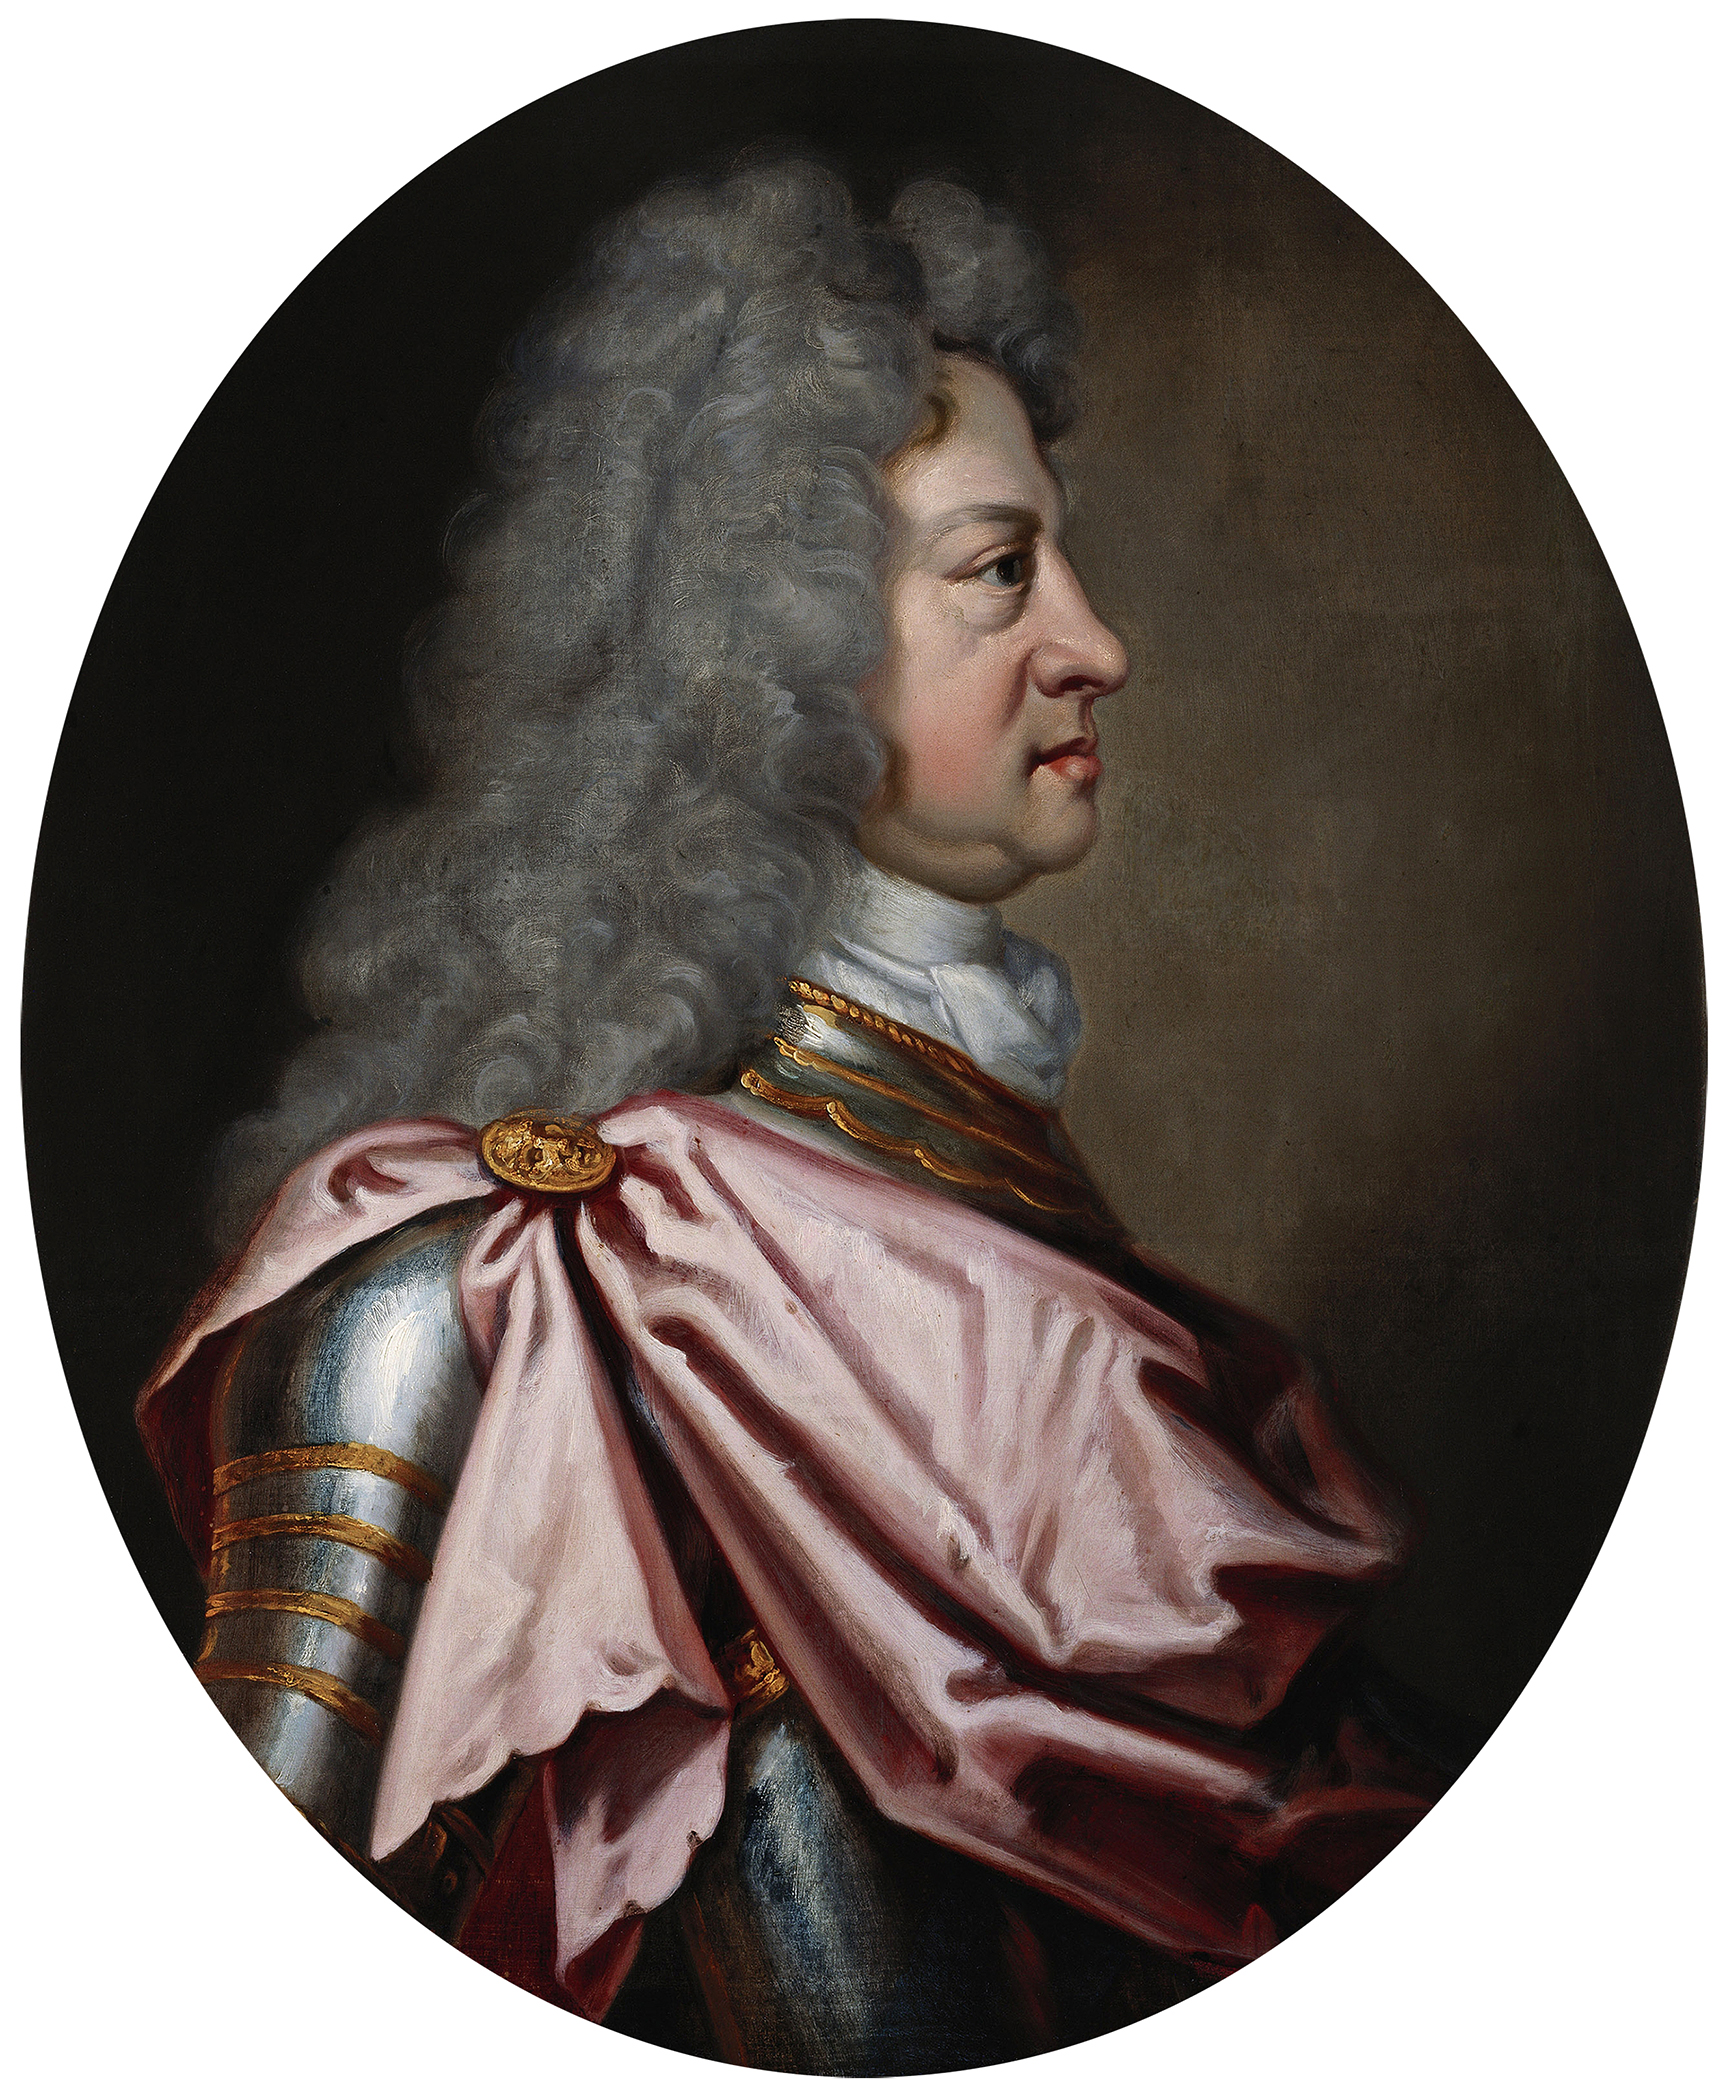 Portrait of George I (1660-1727), King of Great Britain and Ireland (1714-1727), Duke of Brunswick-Lüneburg (Elector of Hanover) from 1698 to 1727, 1715 | Portraits of Kings